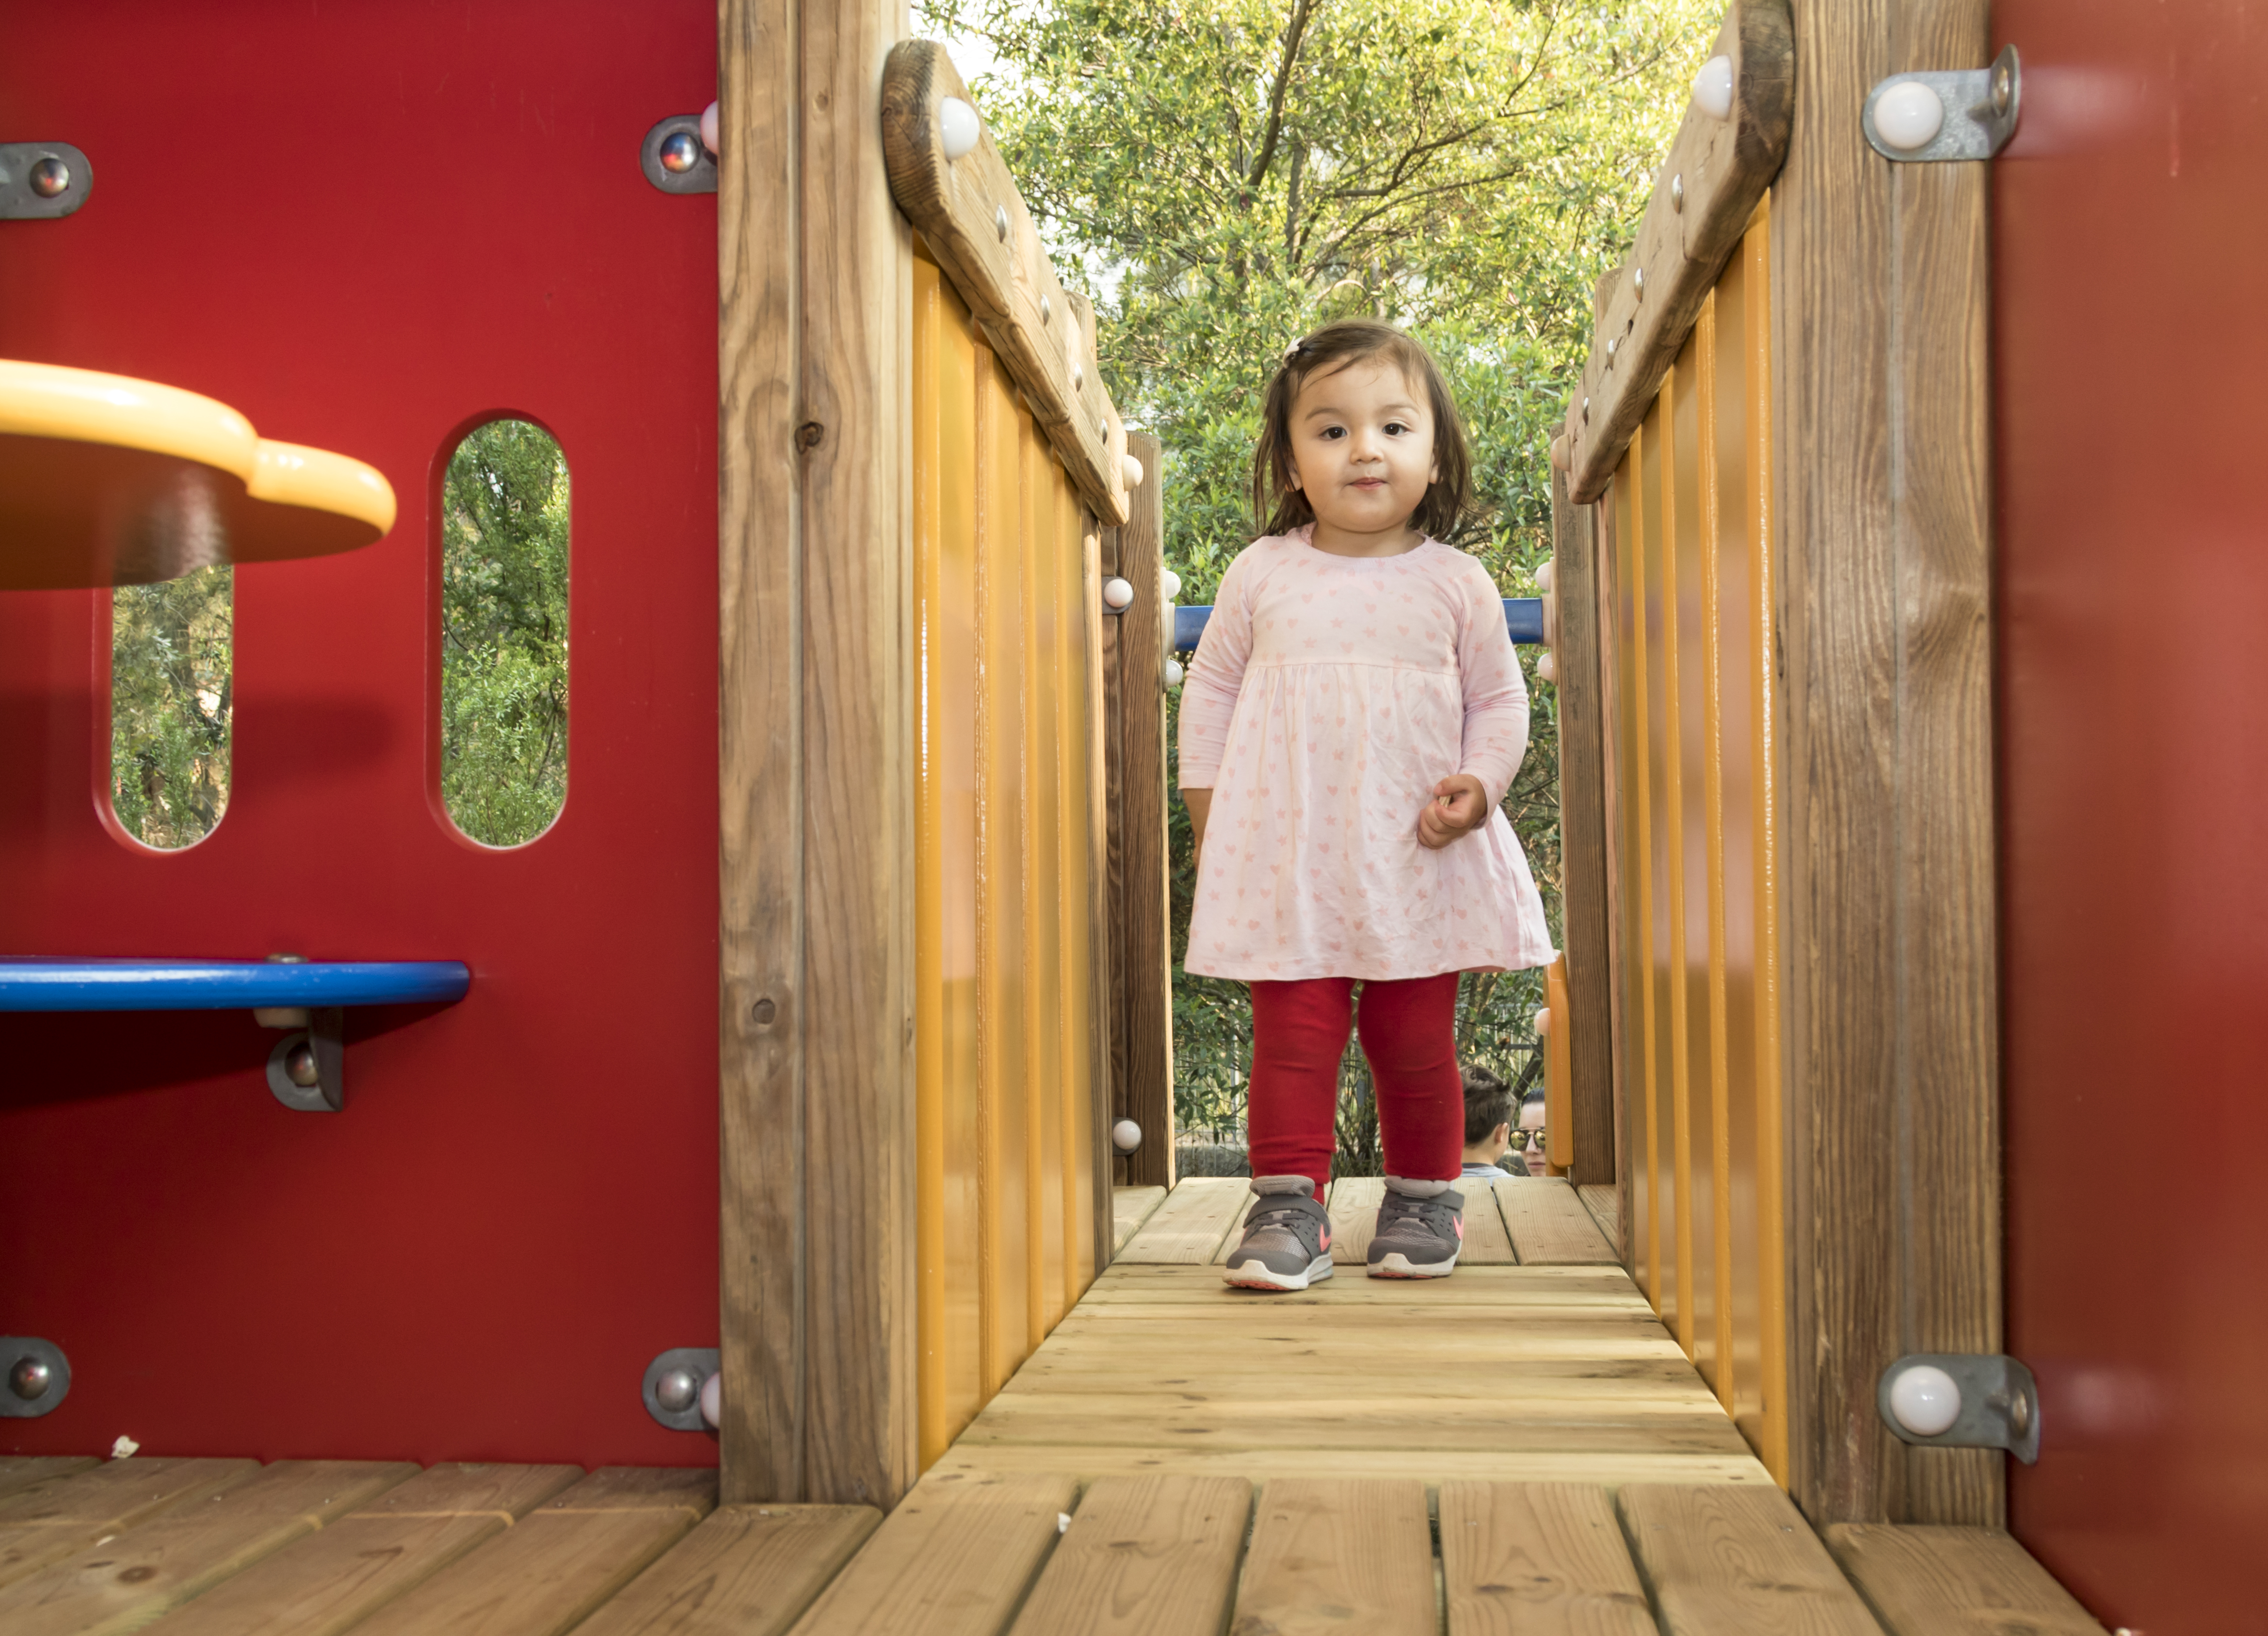 A young girl is walking across an imaginative play bridge. She is smiling.